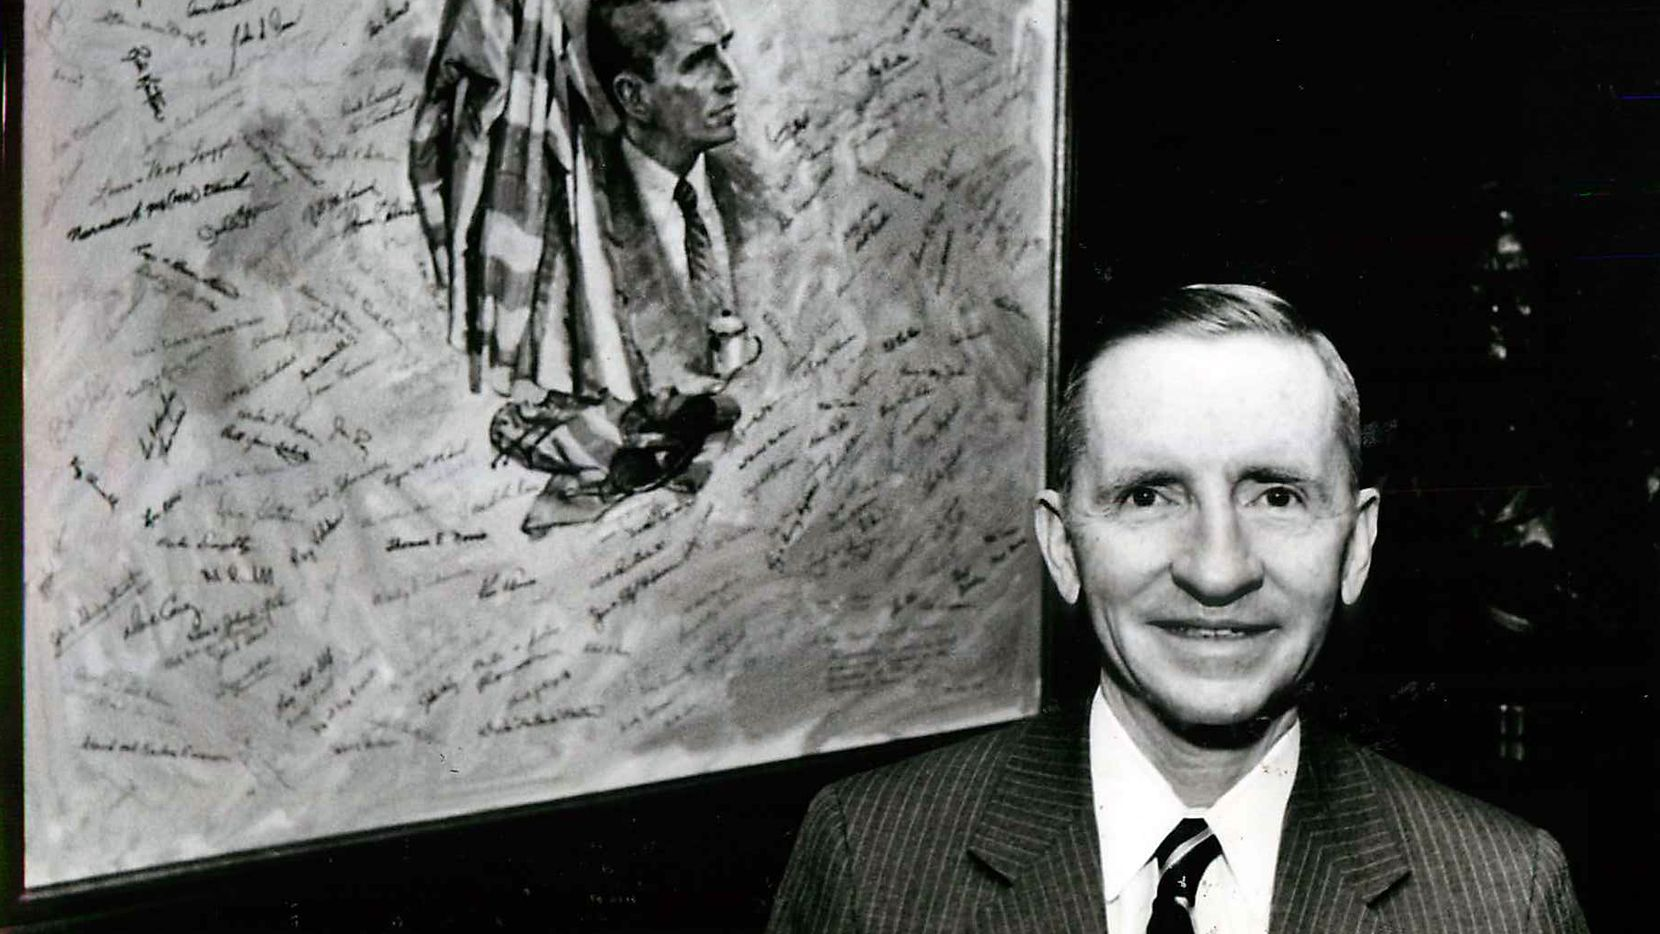 H. Ross Perot stands outside his office beside a painting autographed by many of the POWs he has helped. Helping POWs and improving Texas education were two of his main pet causes.